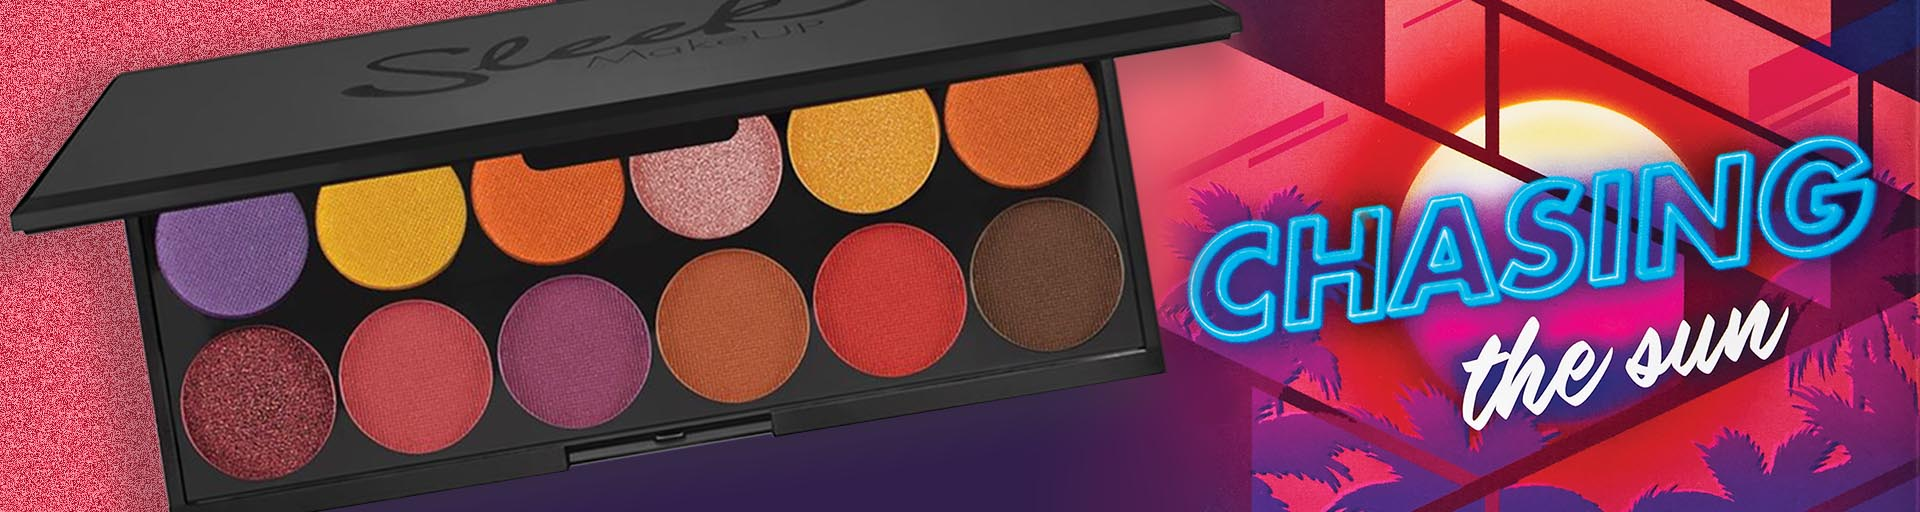 sleek makeup sunset vibes chasing the sun i divine eyeshadow palette